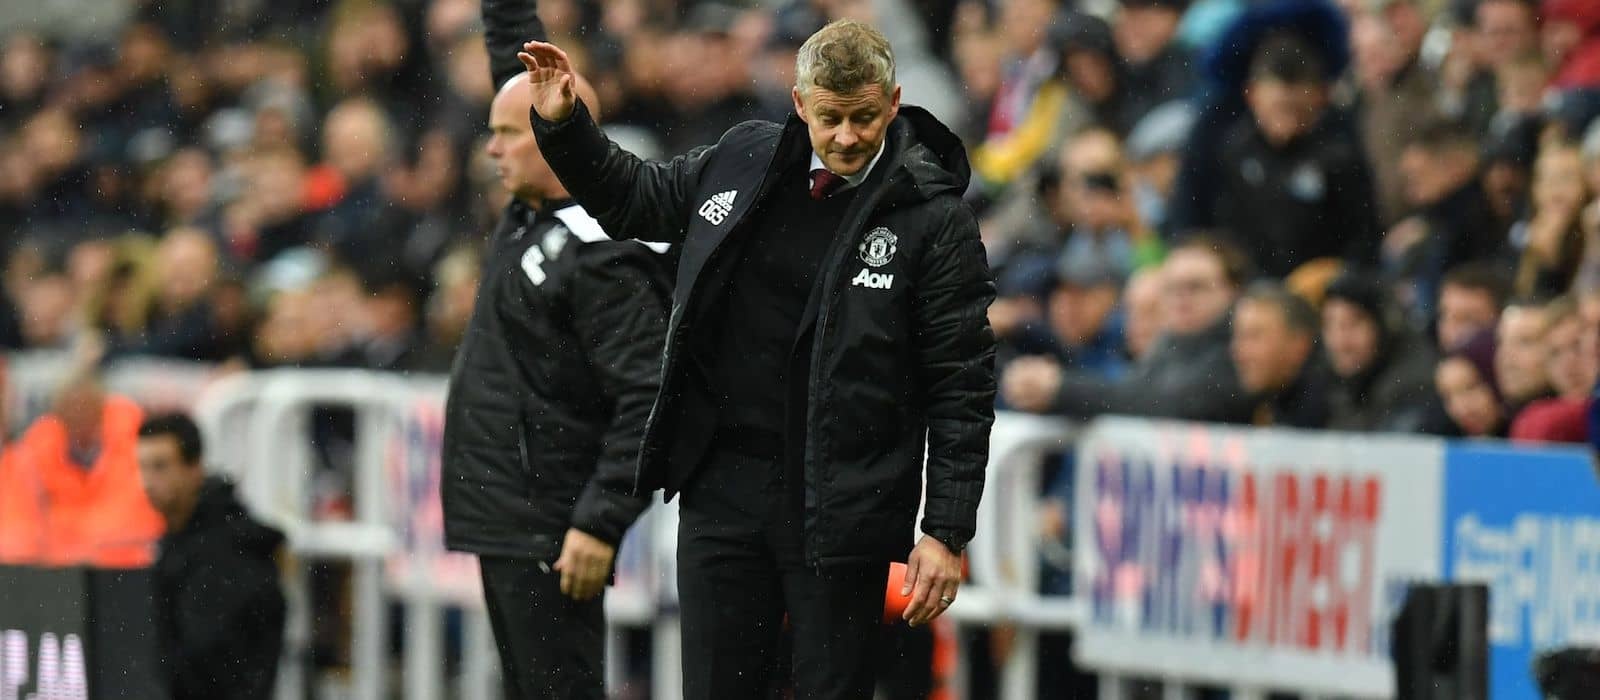 Manchester United fans respond to question over who should replace Ole Gunnar Solskjaer